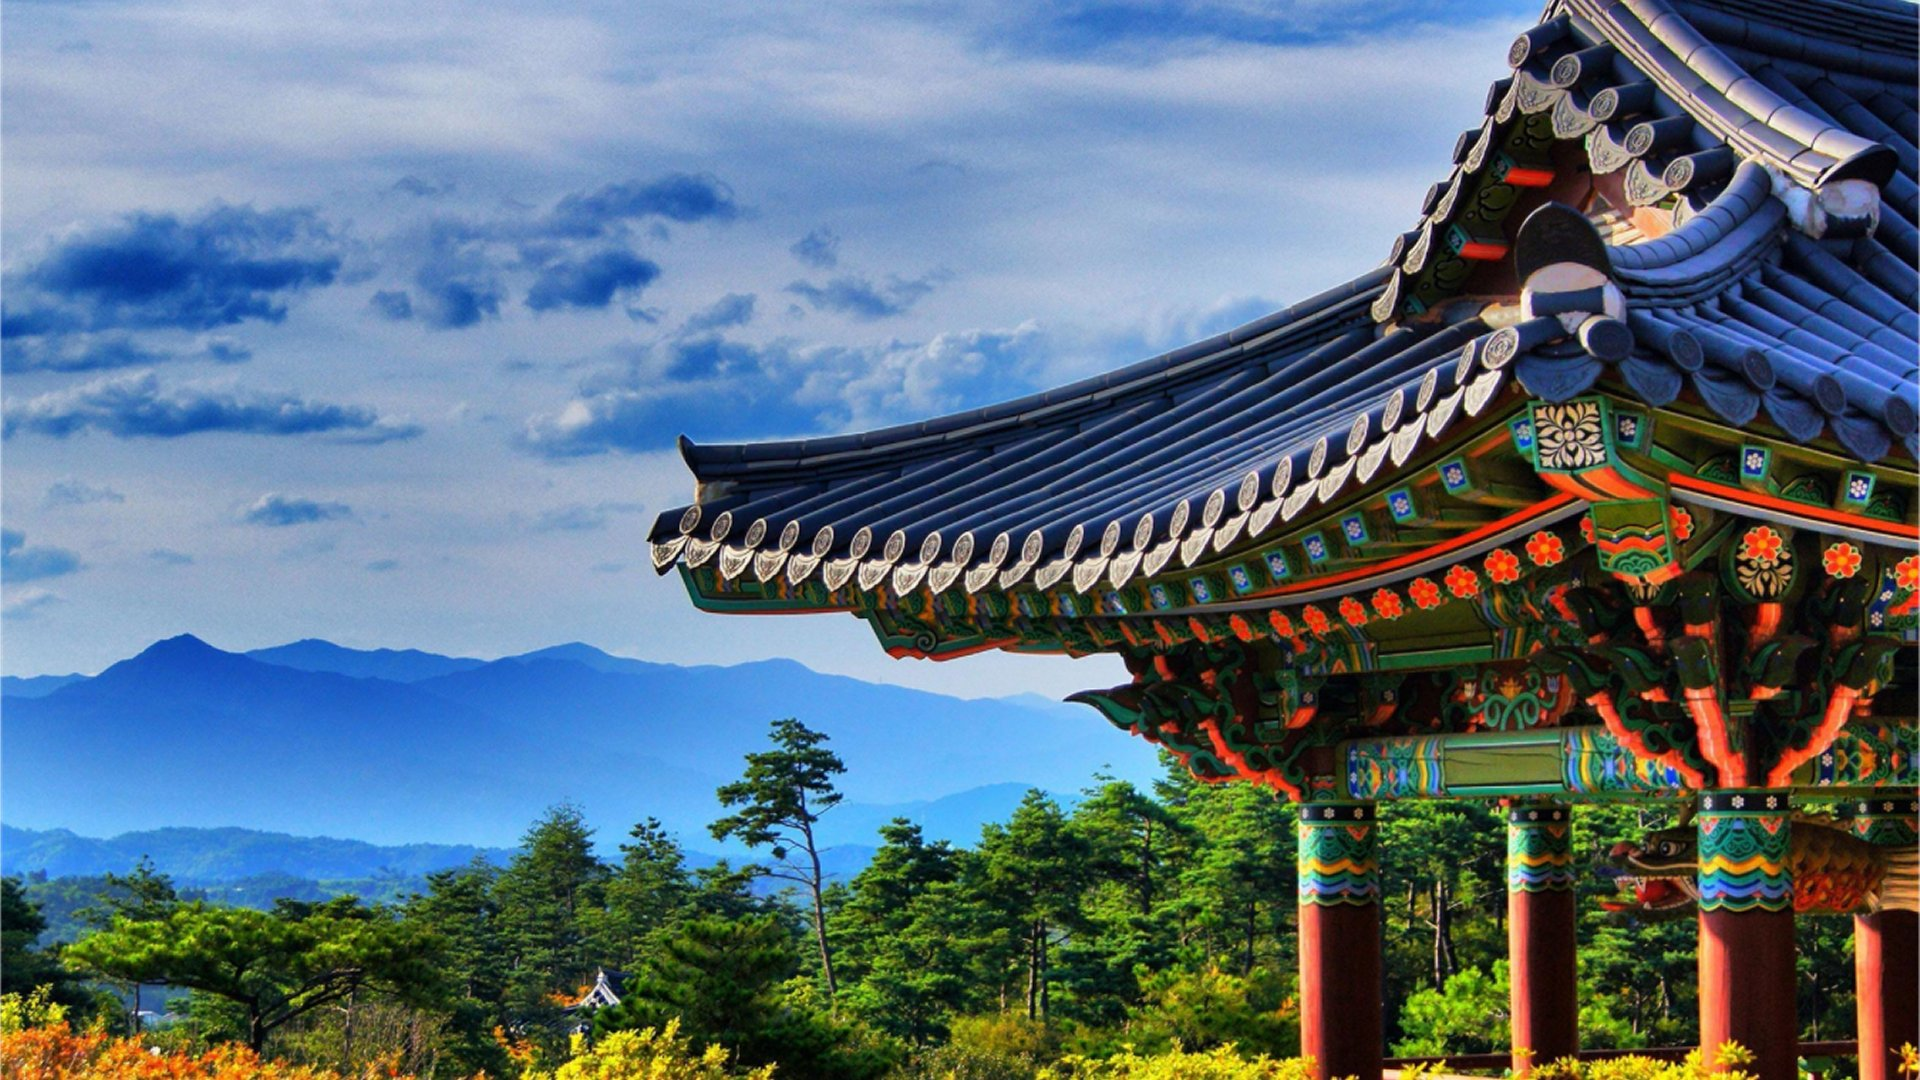 TRAVEL GUIDE : 3 DAYS IN SEOUL